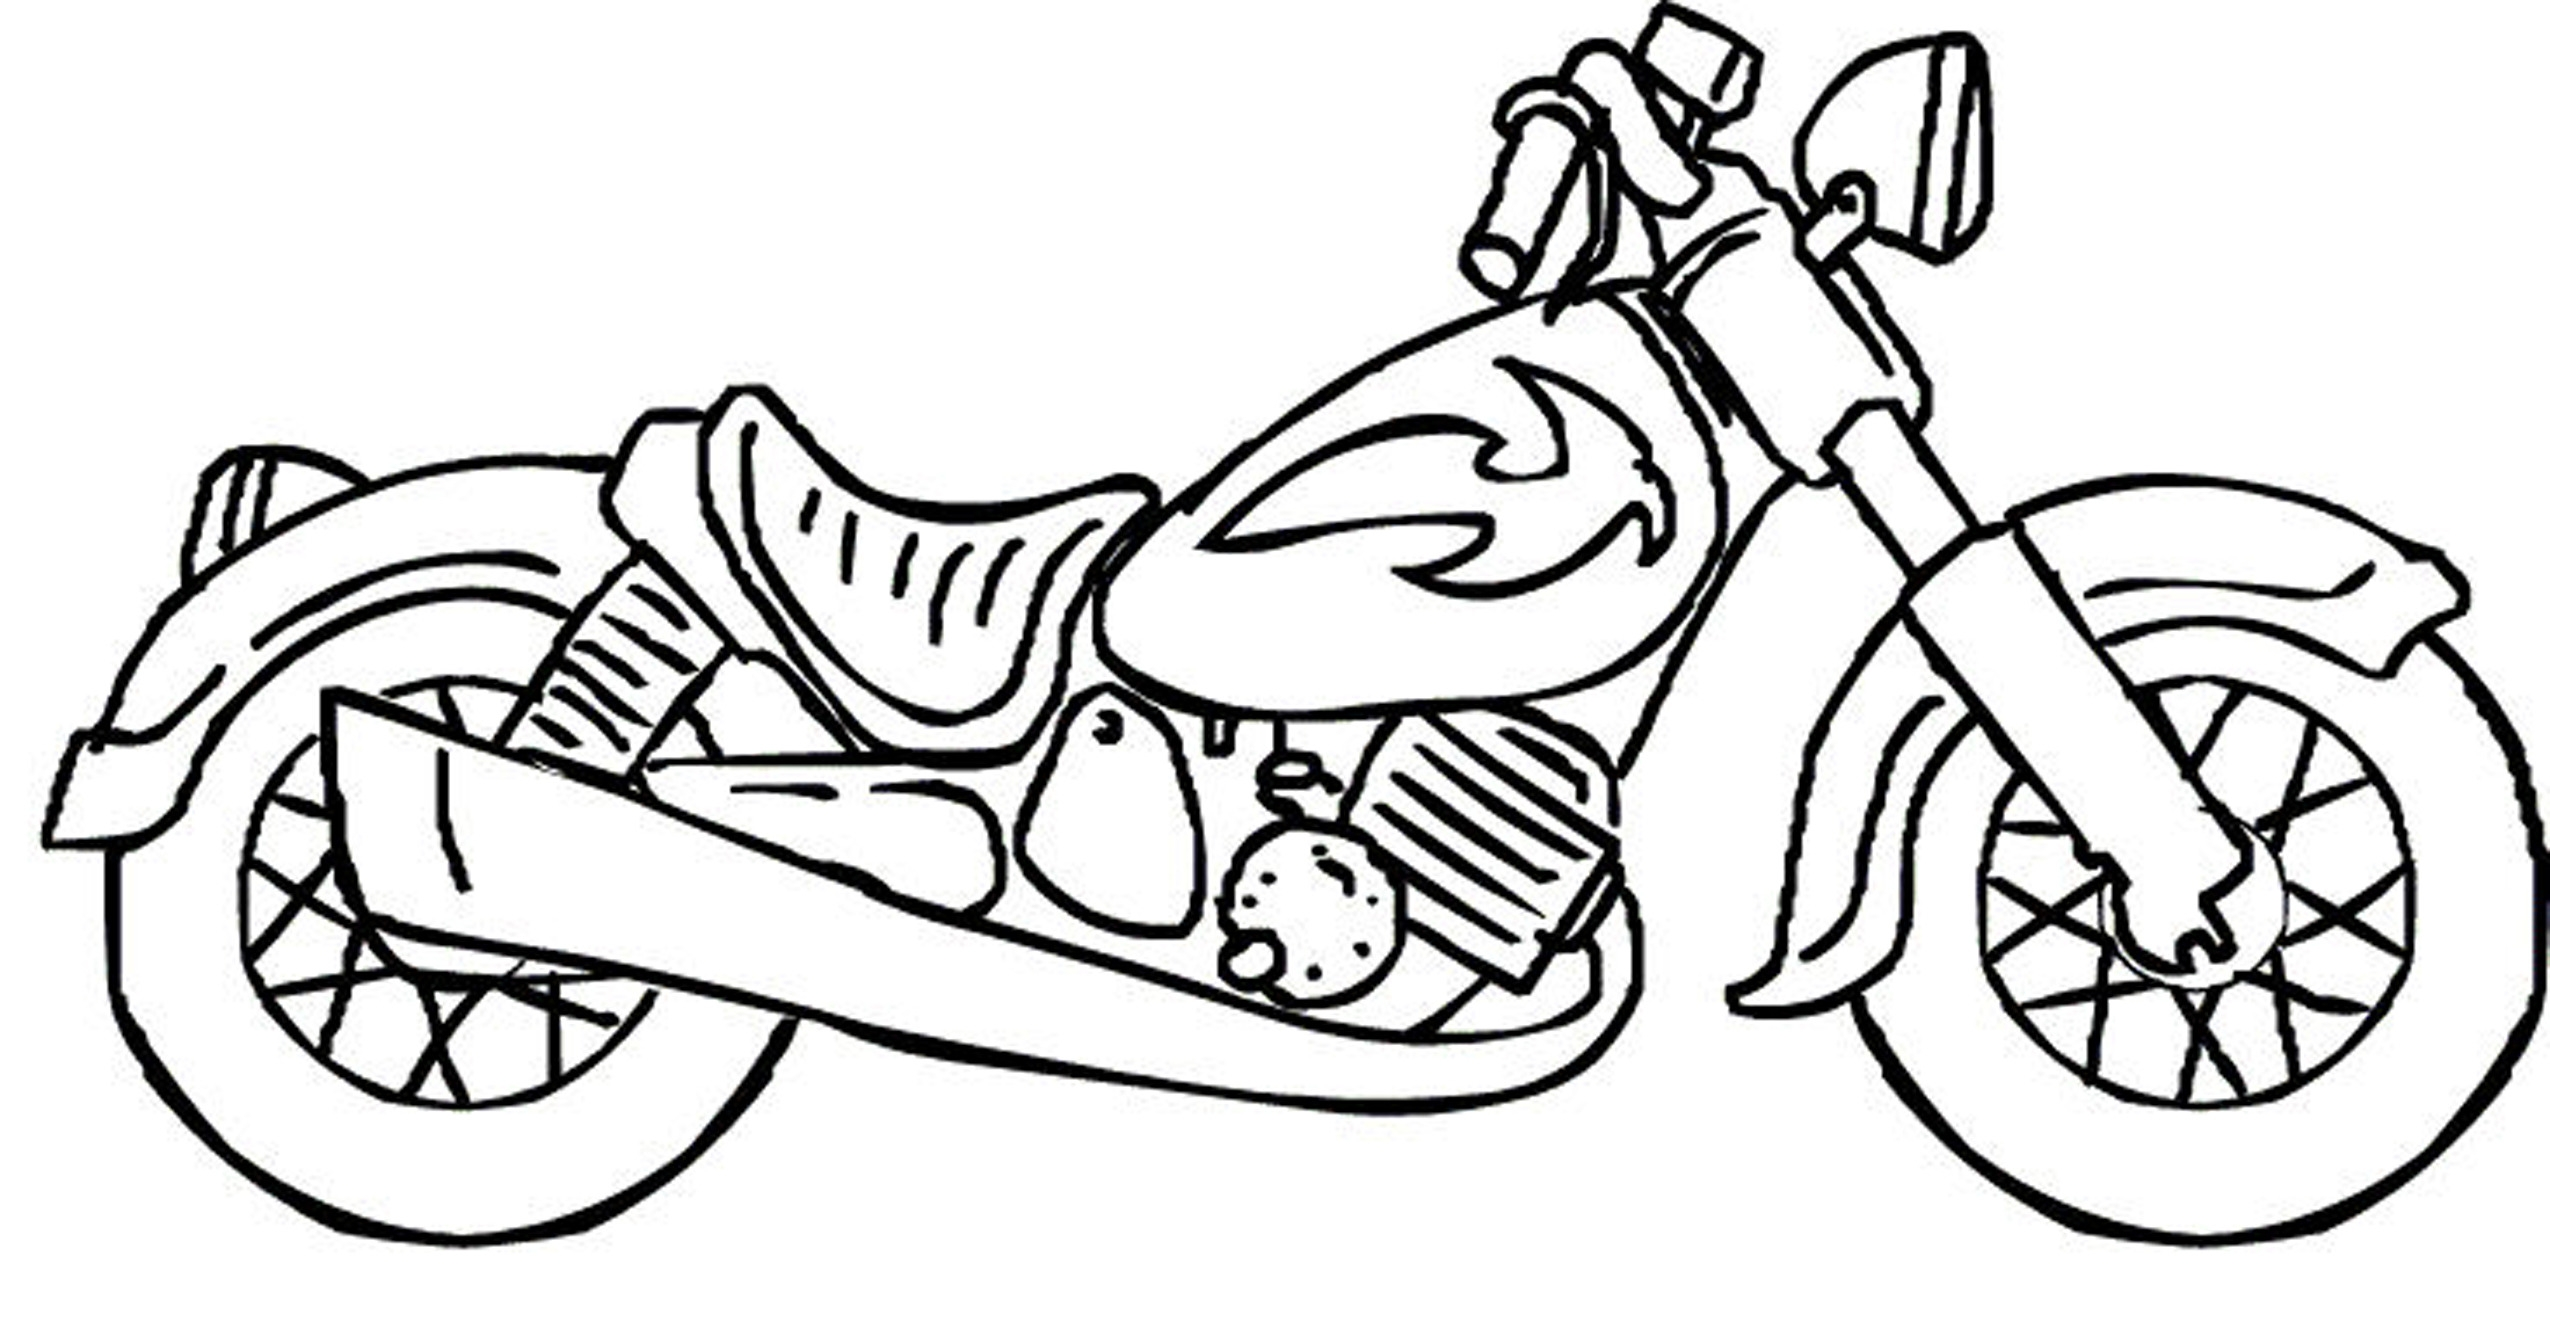 motorcycle coloring book pages - photo#39